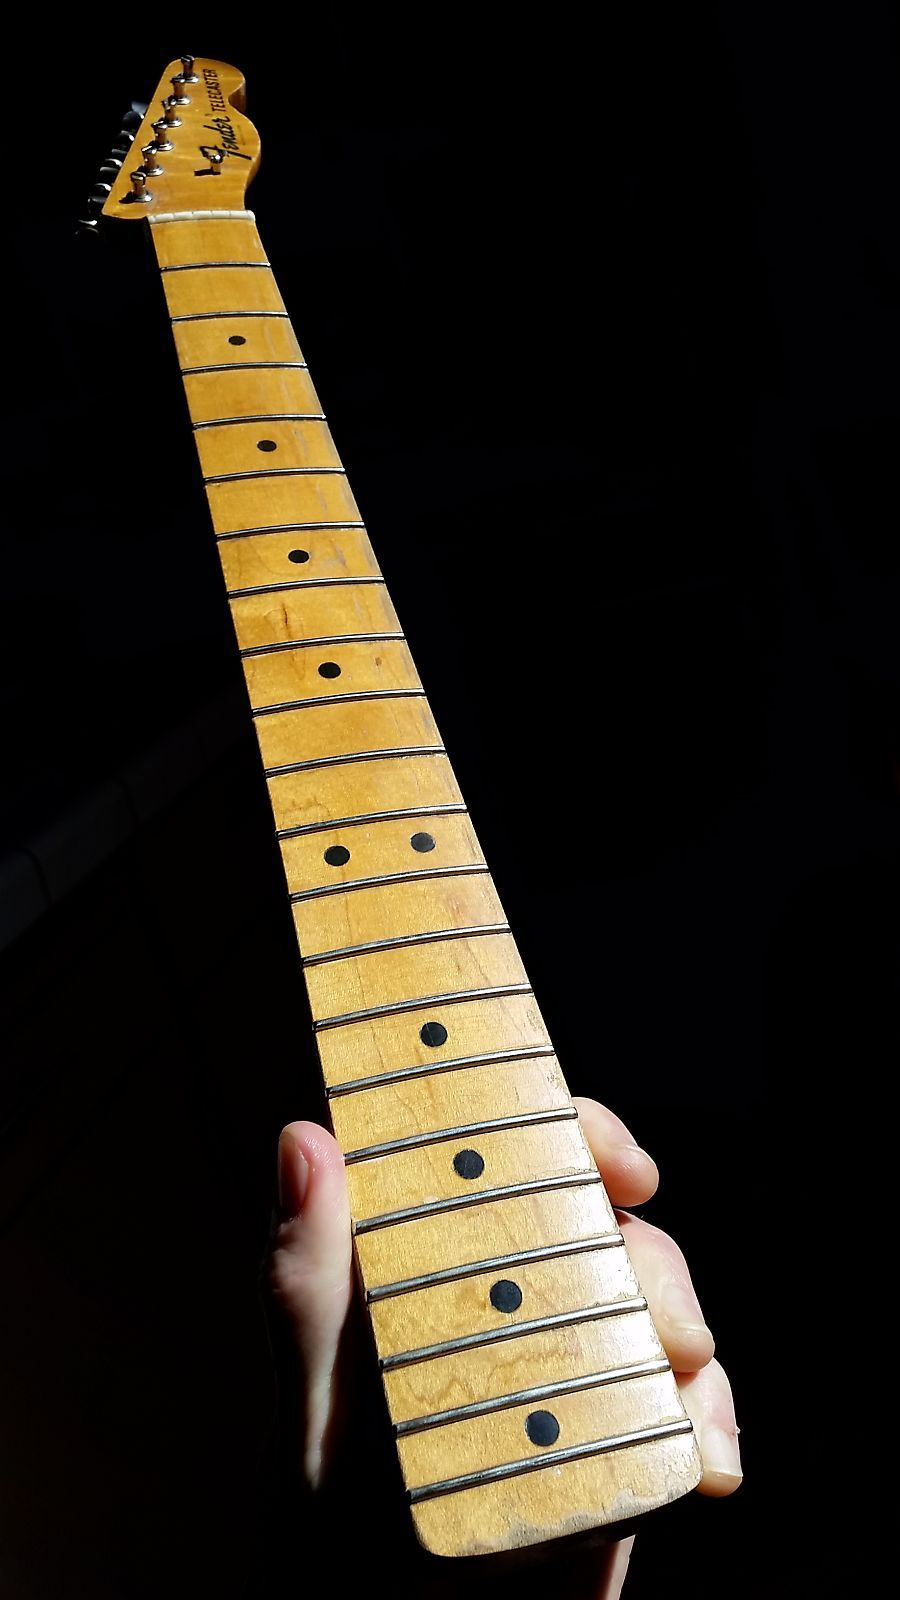 Vintage 1968 Fender Telecaster Neck Maple Cap Jimi Hendrix Fits Stratocaster Marshall Gear Garage Reverb Fender Telecaster Telecaster Neck Jimi Hendrix